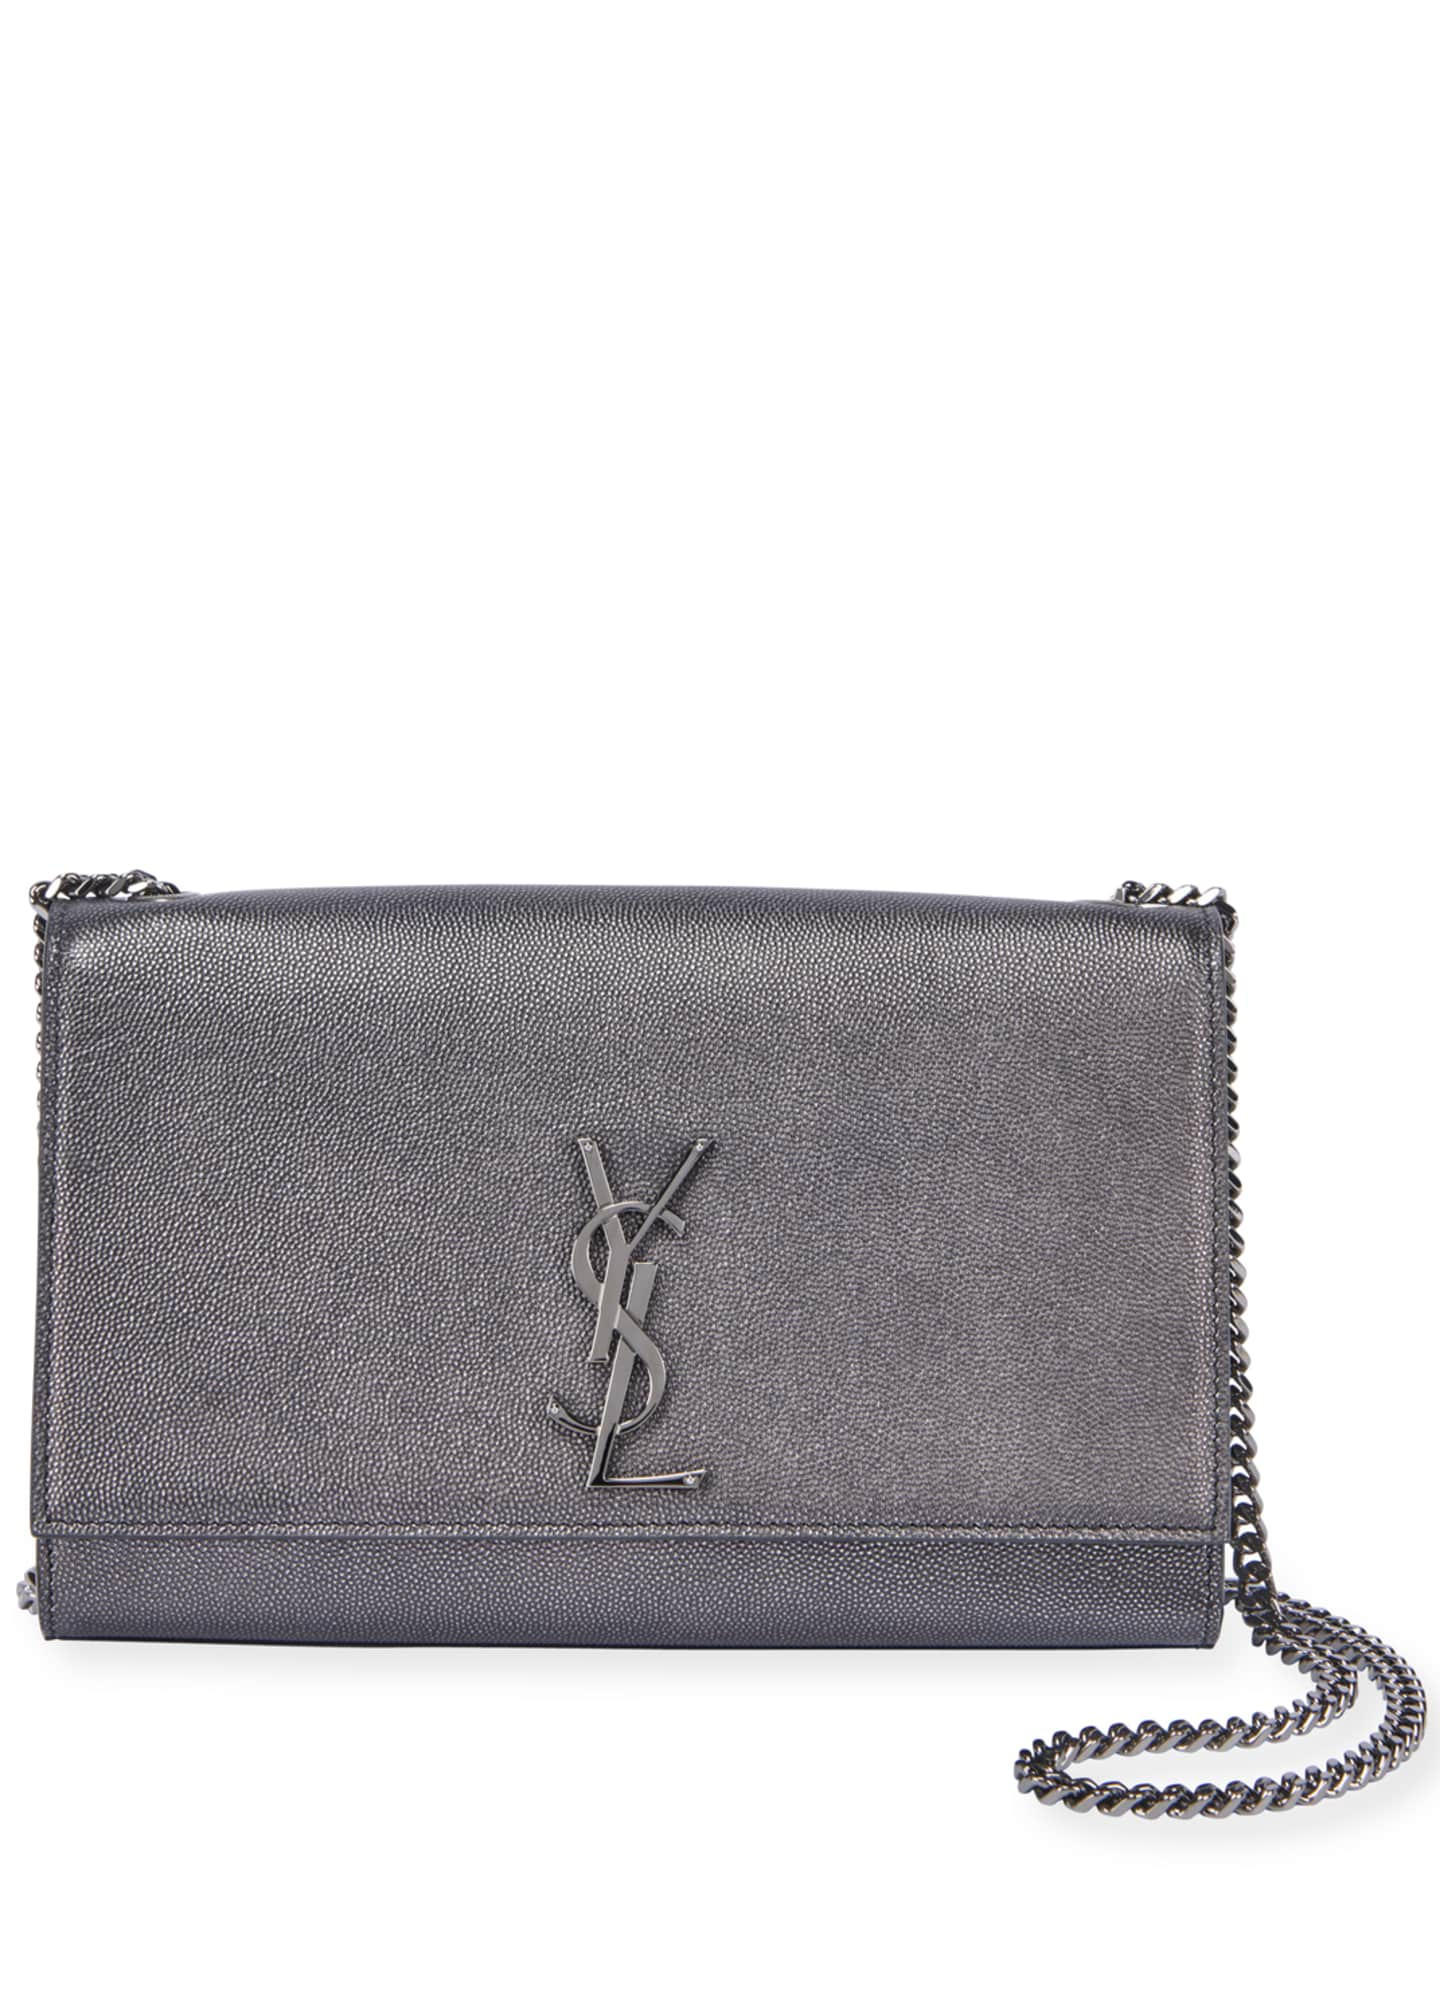 Saint Laurent Kate Medium Antique Calfskin Leather Crossbody